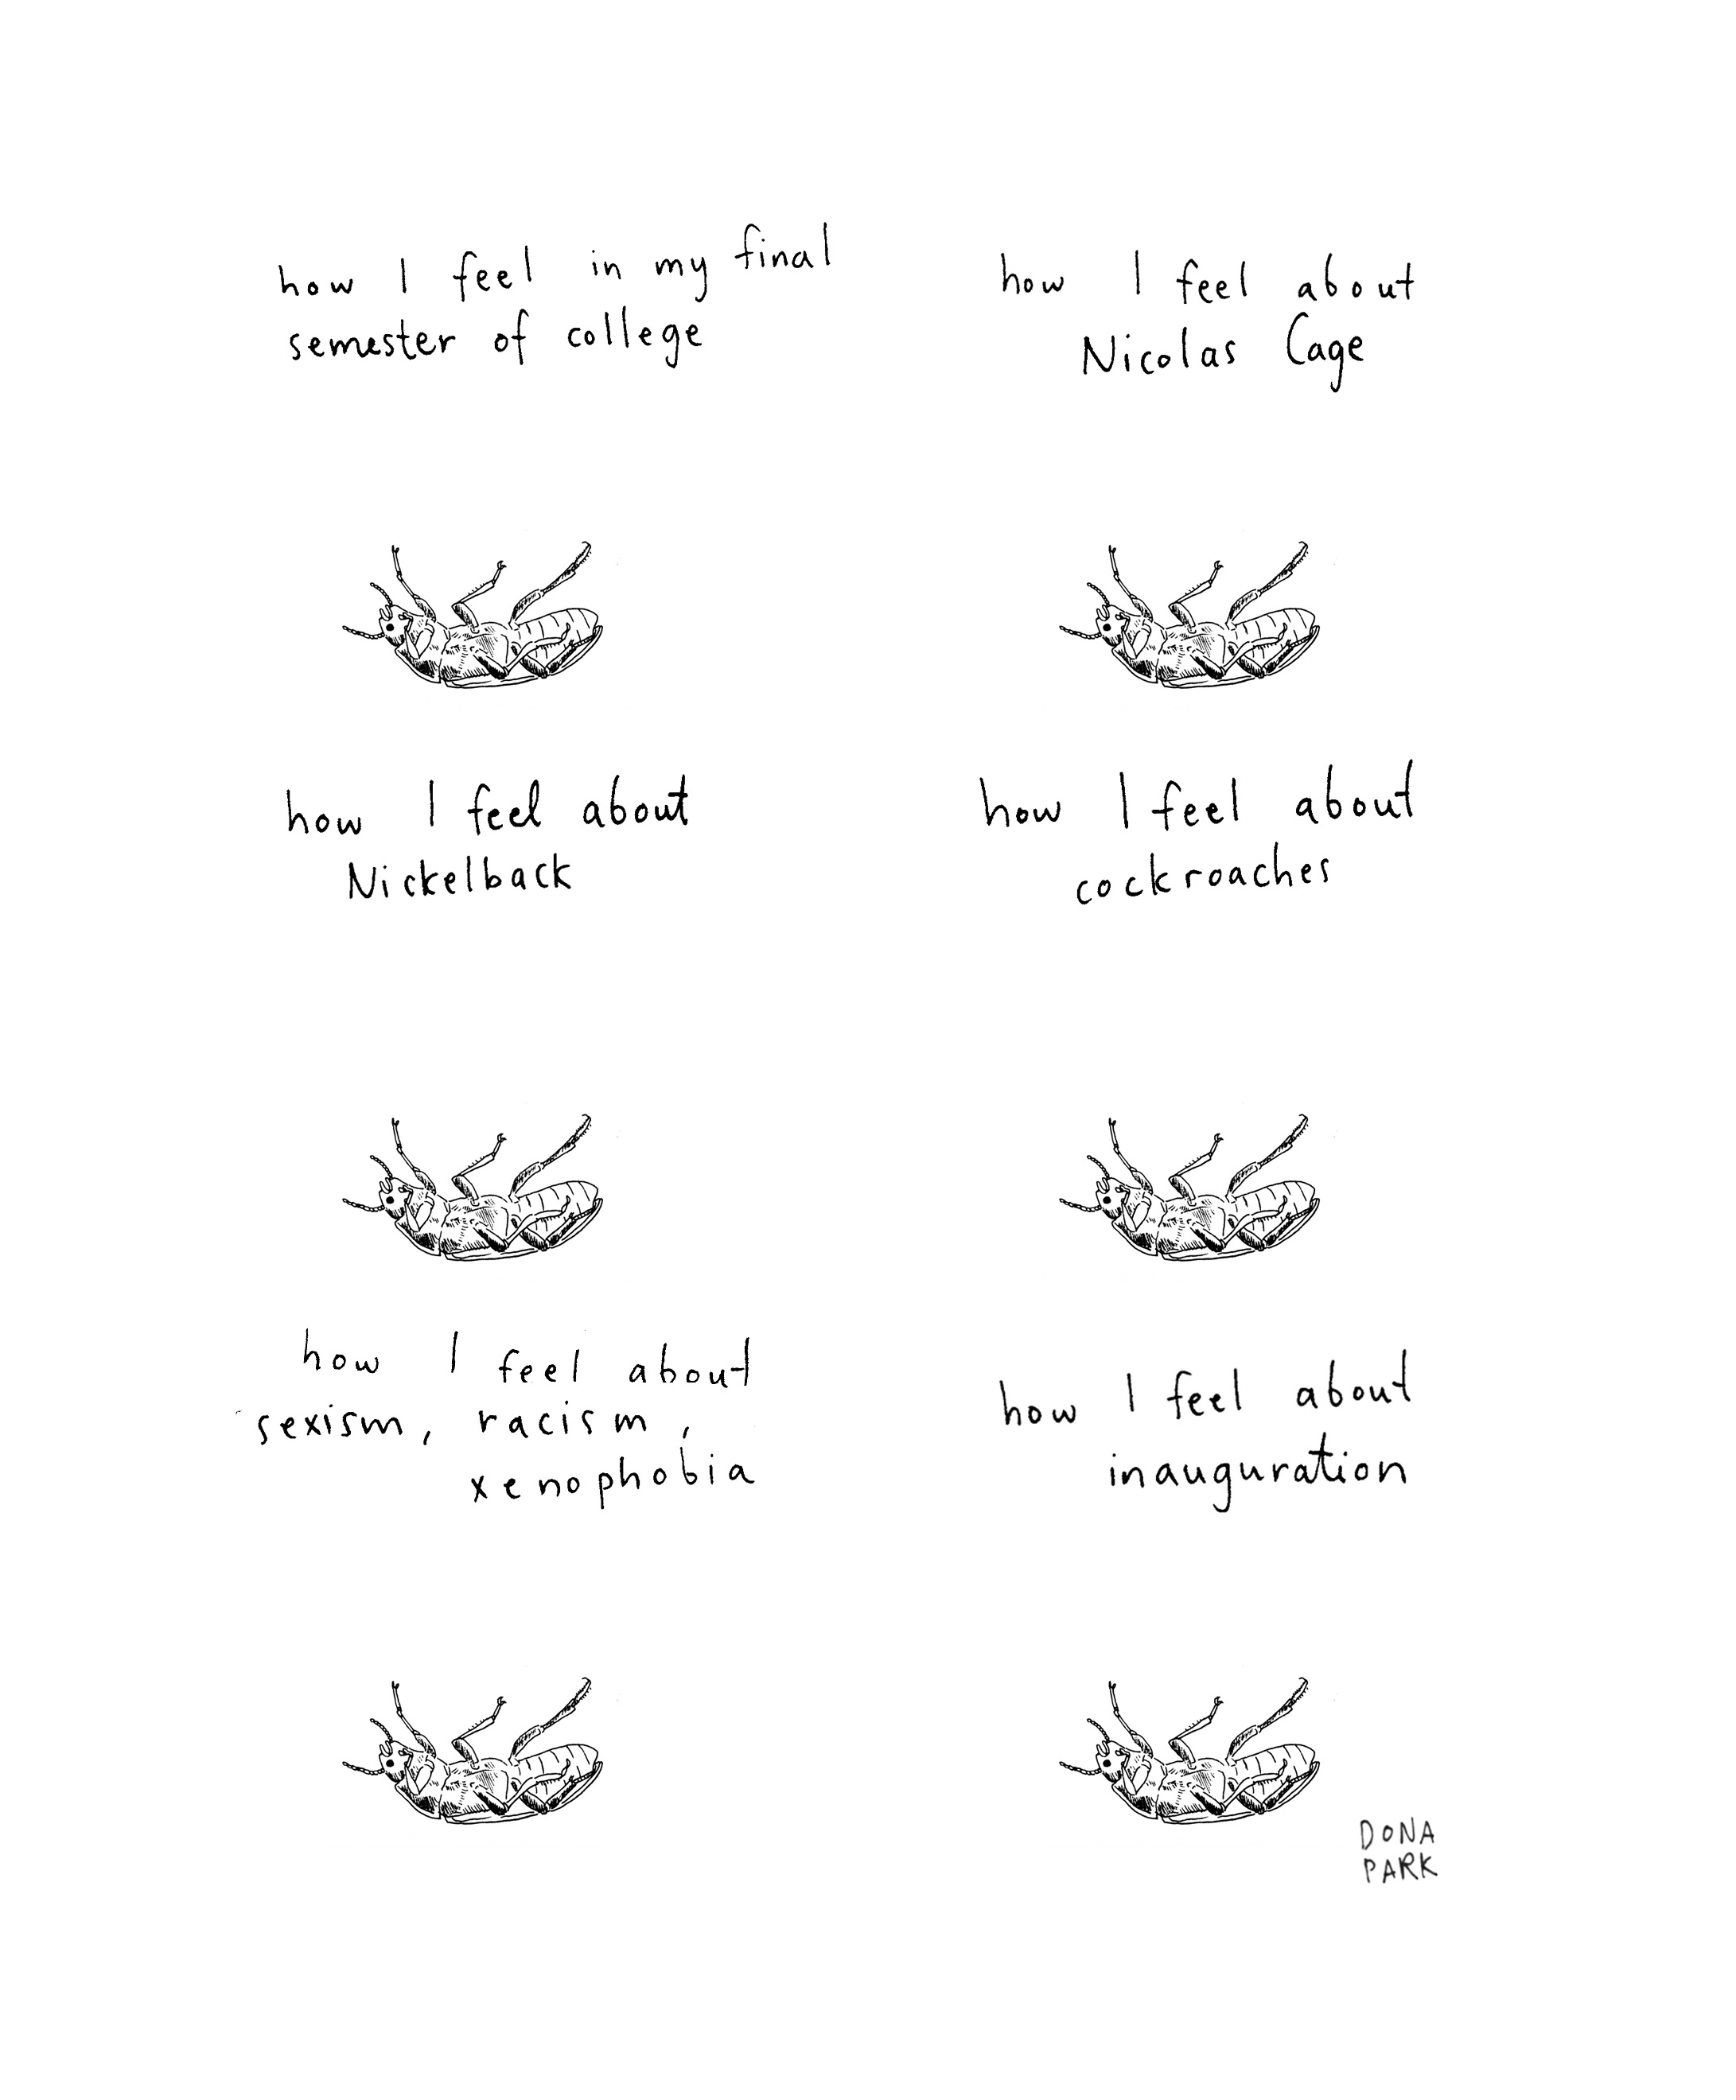 Feelings about topics such as Nicolas Cage and the inauguration illustrated by drawings of cockroaches